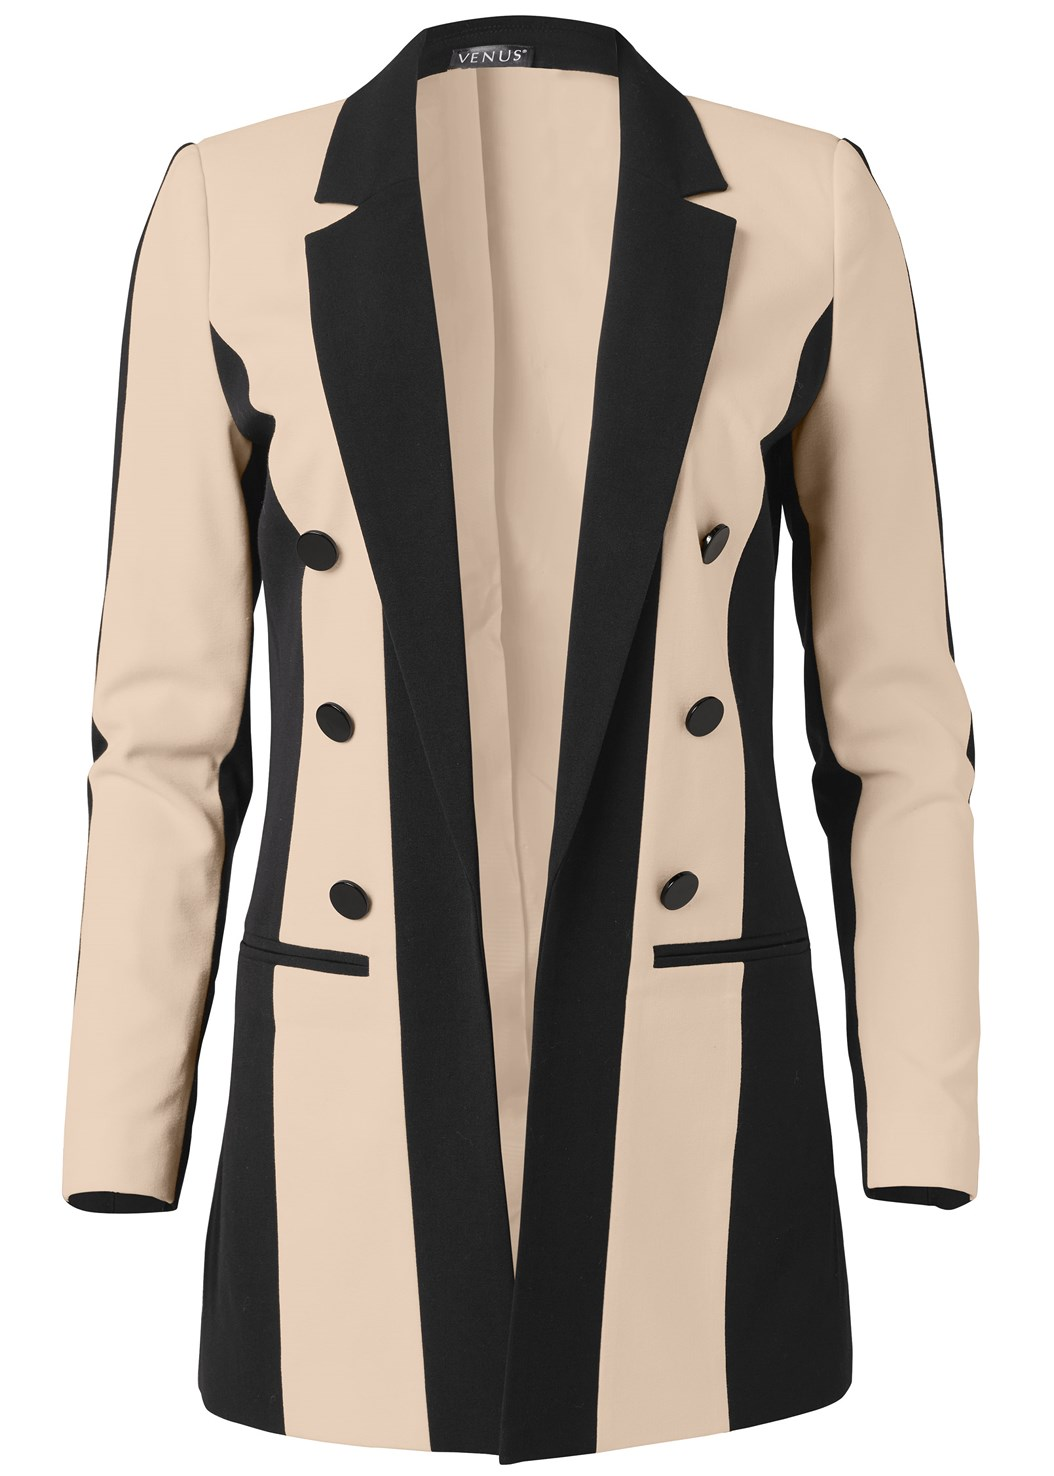 Color Block Long Blazer,Mid Rise Slimming Stretch Jeggings,Bow Detail Print Heels,Basic Cami Two Pack